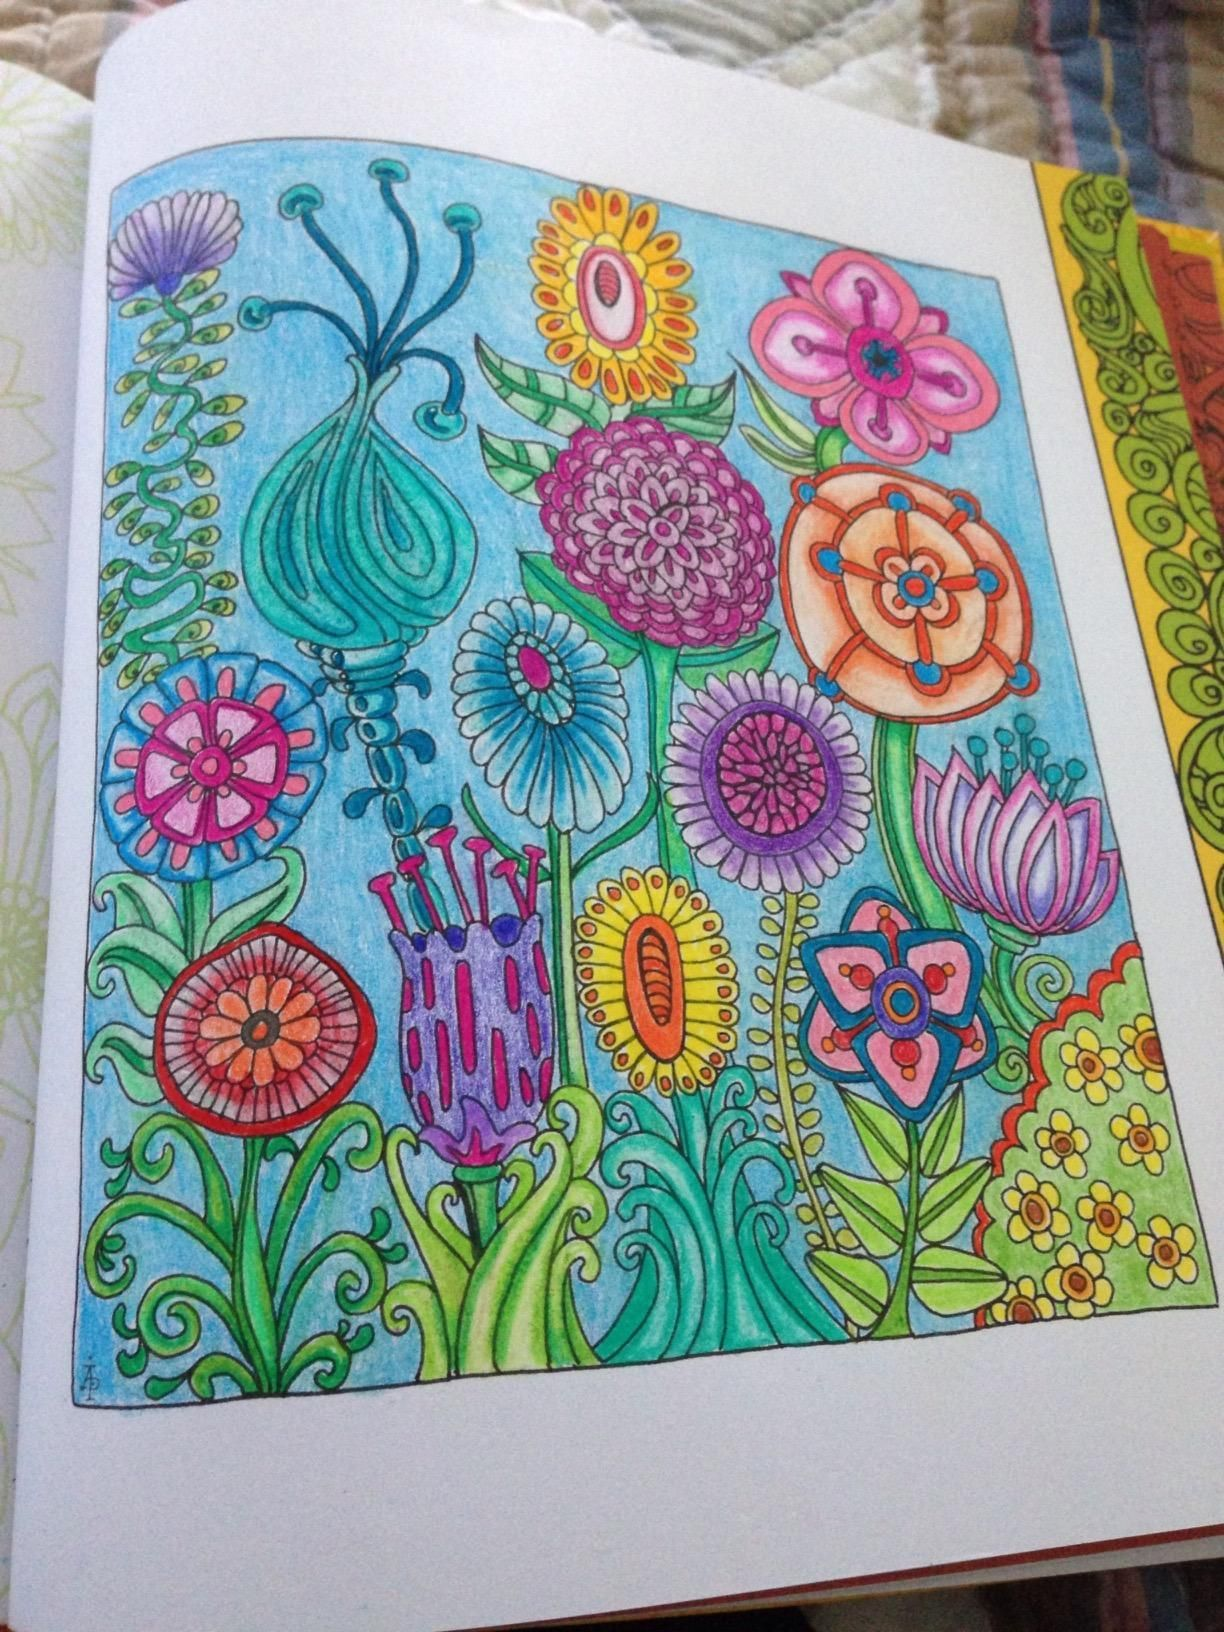 Color Me Happy 100 Coloring Templates That Will Make You Smile A Zen Coloring Book Lacy Mucklow Angela Porter 97819379 Coloring Books Zen Colors Color Me